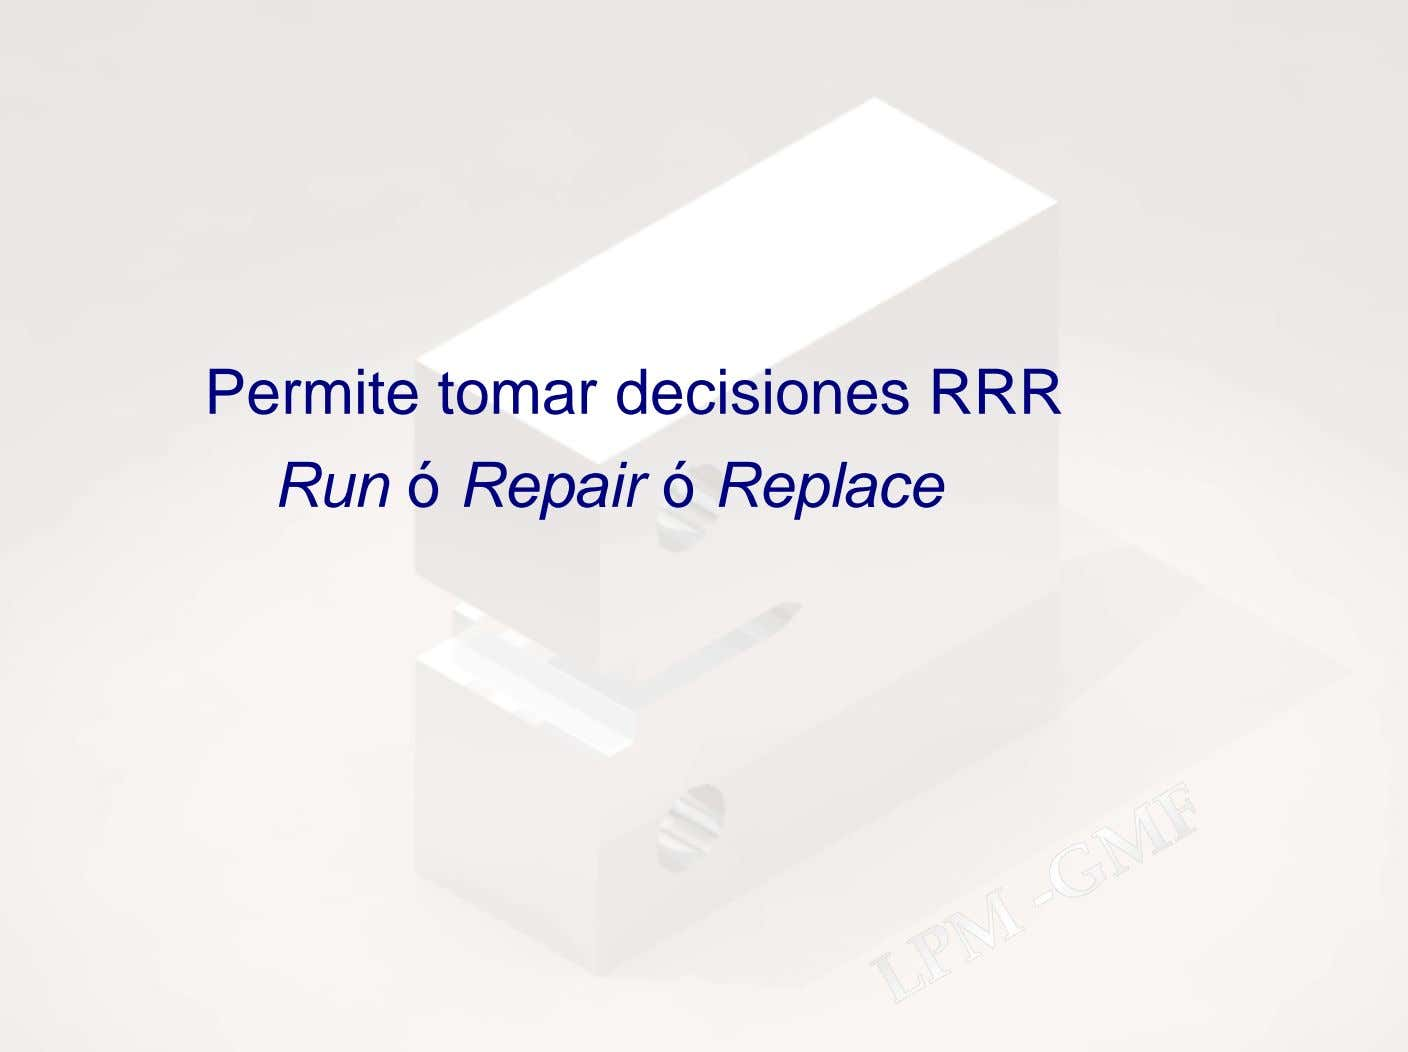 Permite tomar decisiones RRR Run ó Repair ó Replace